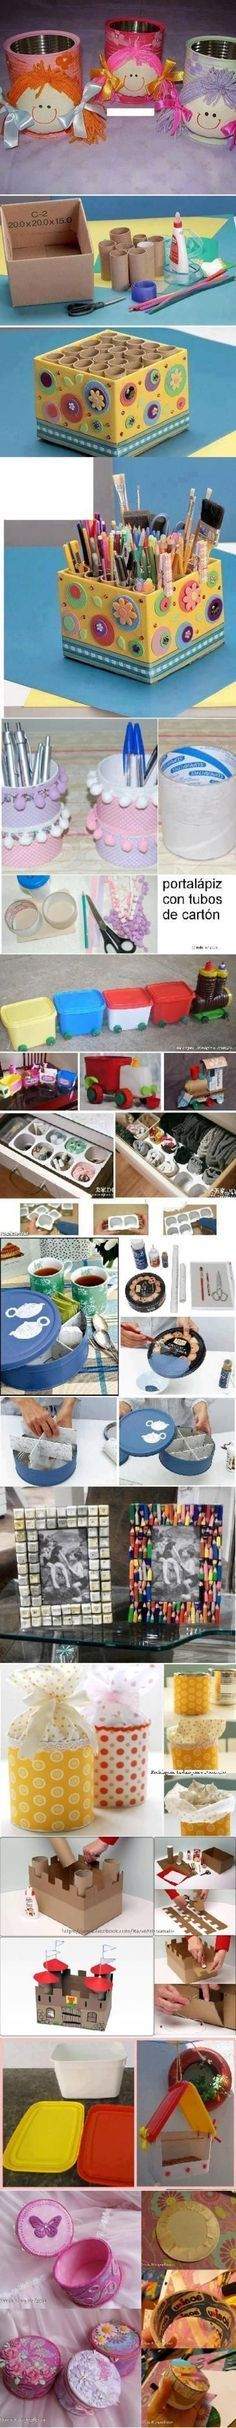 Easy DIY Crafts You Can Make With Things Around The House